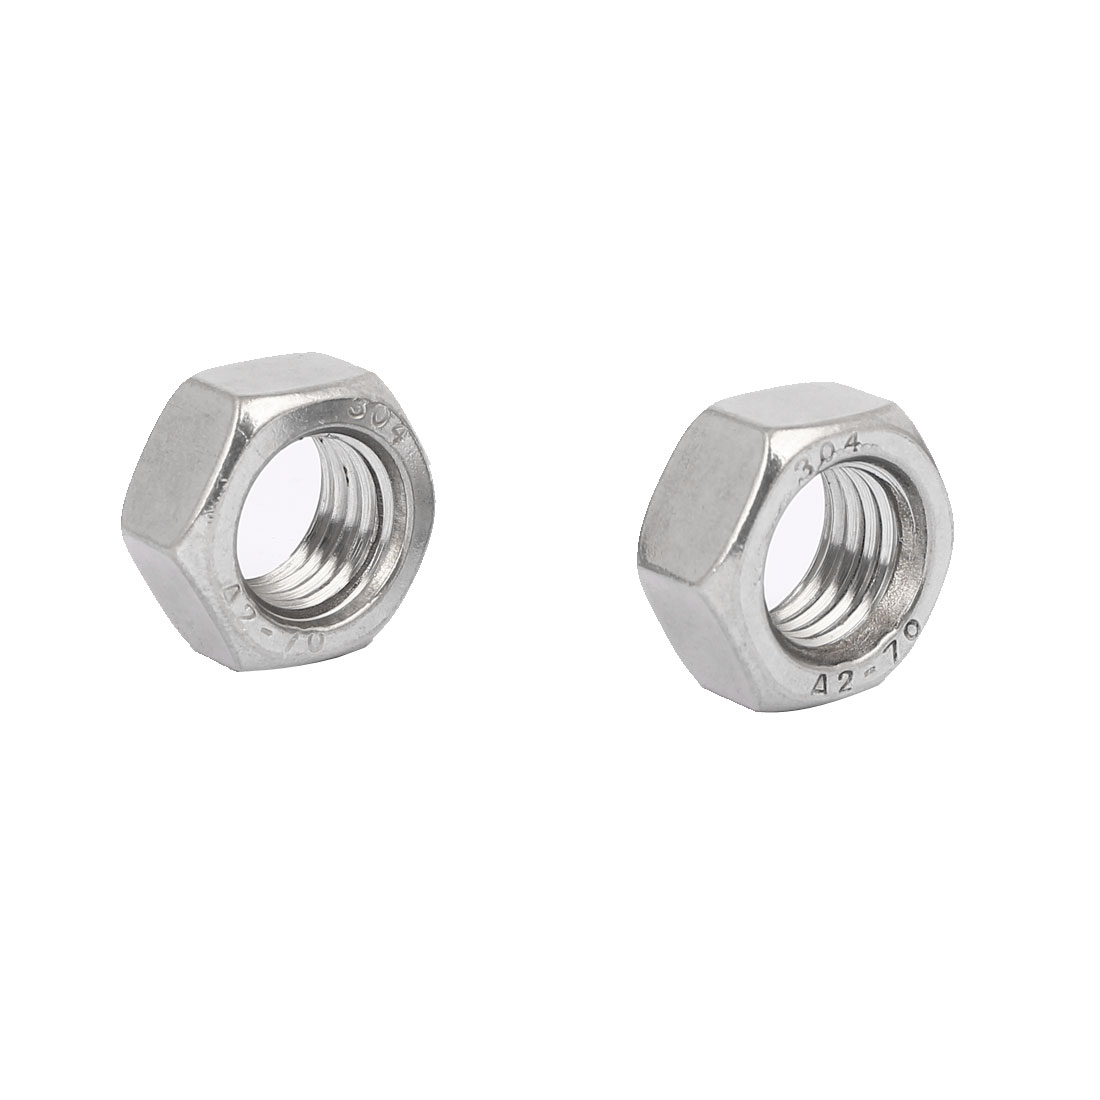 304 Stainless Steel Finished Metric Hex Nut Silver Tone M20 2pcs